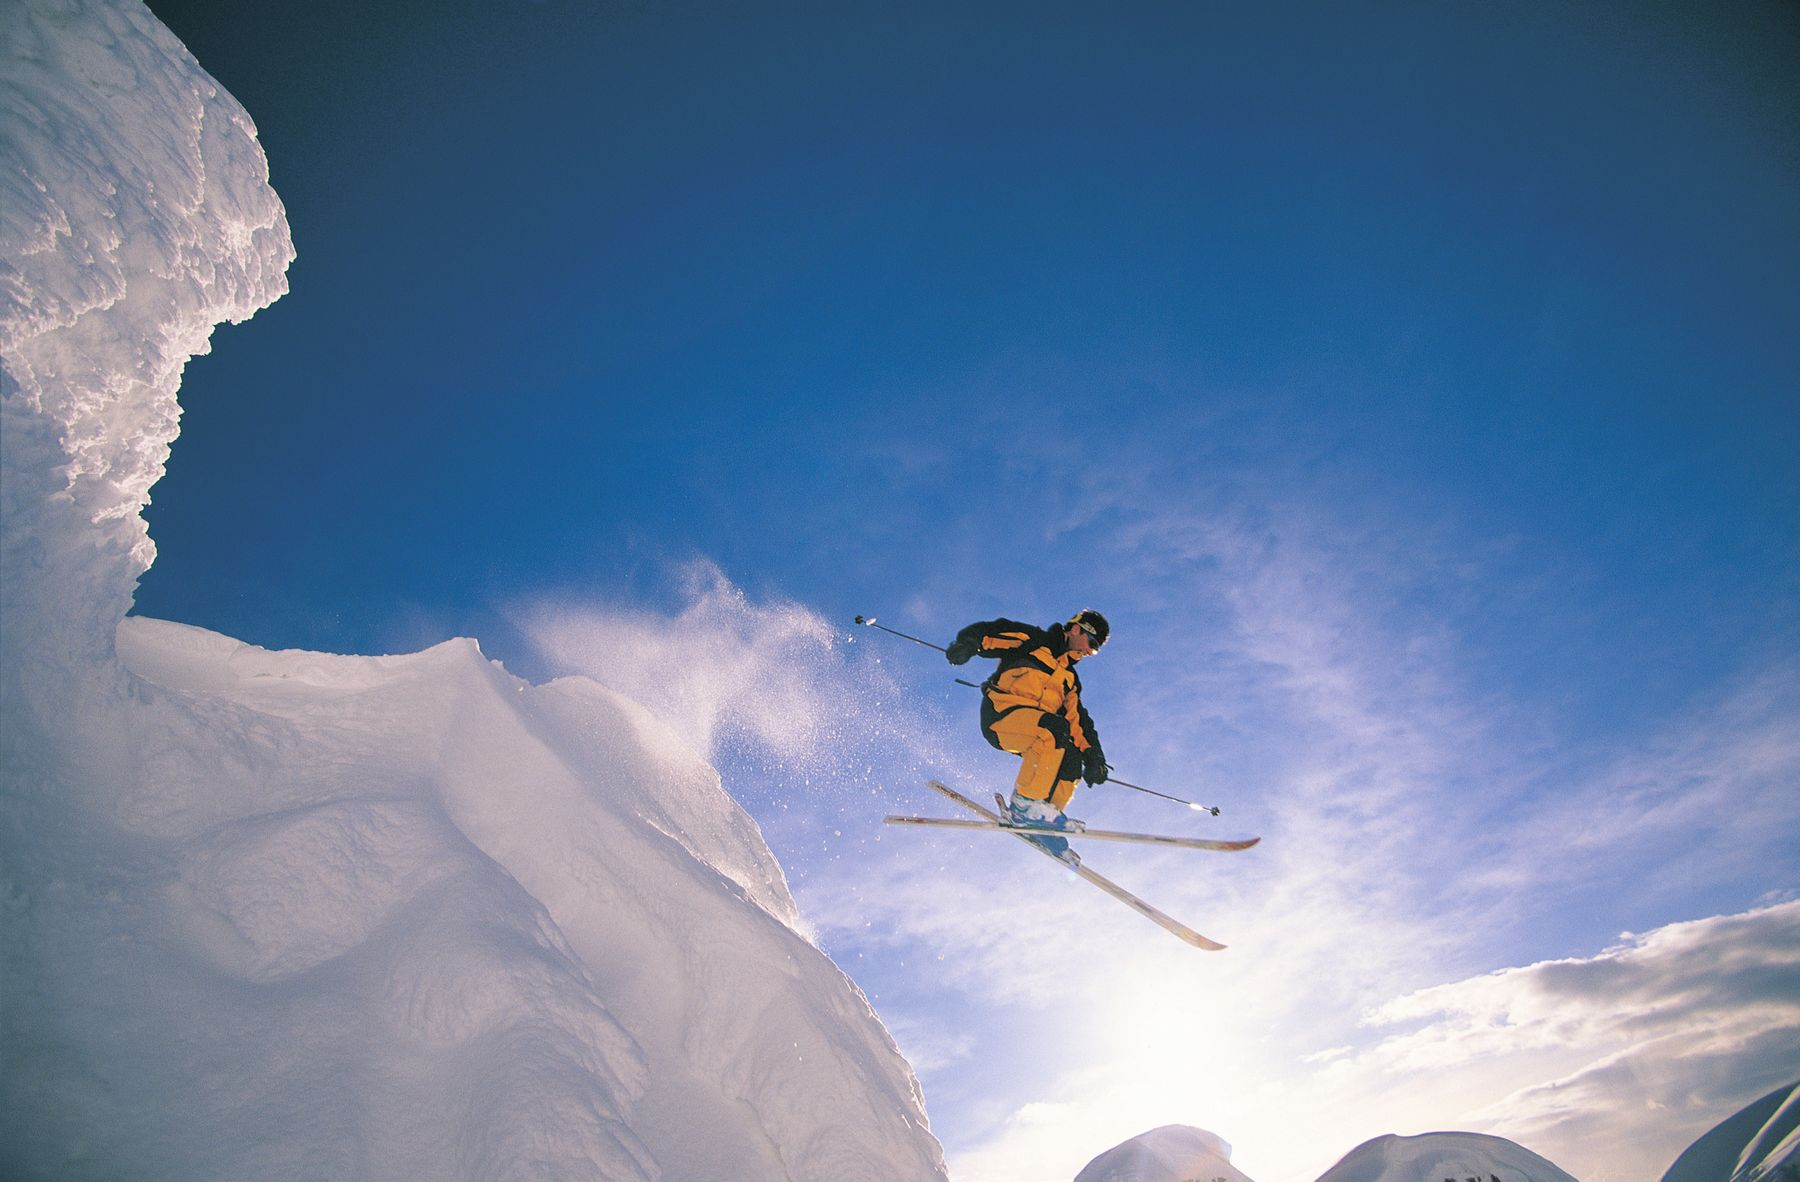 A skier floats mid-air as they have just passed an elevated ledge.